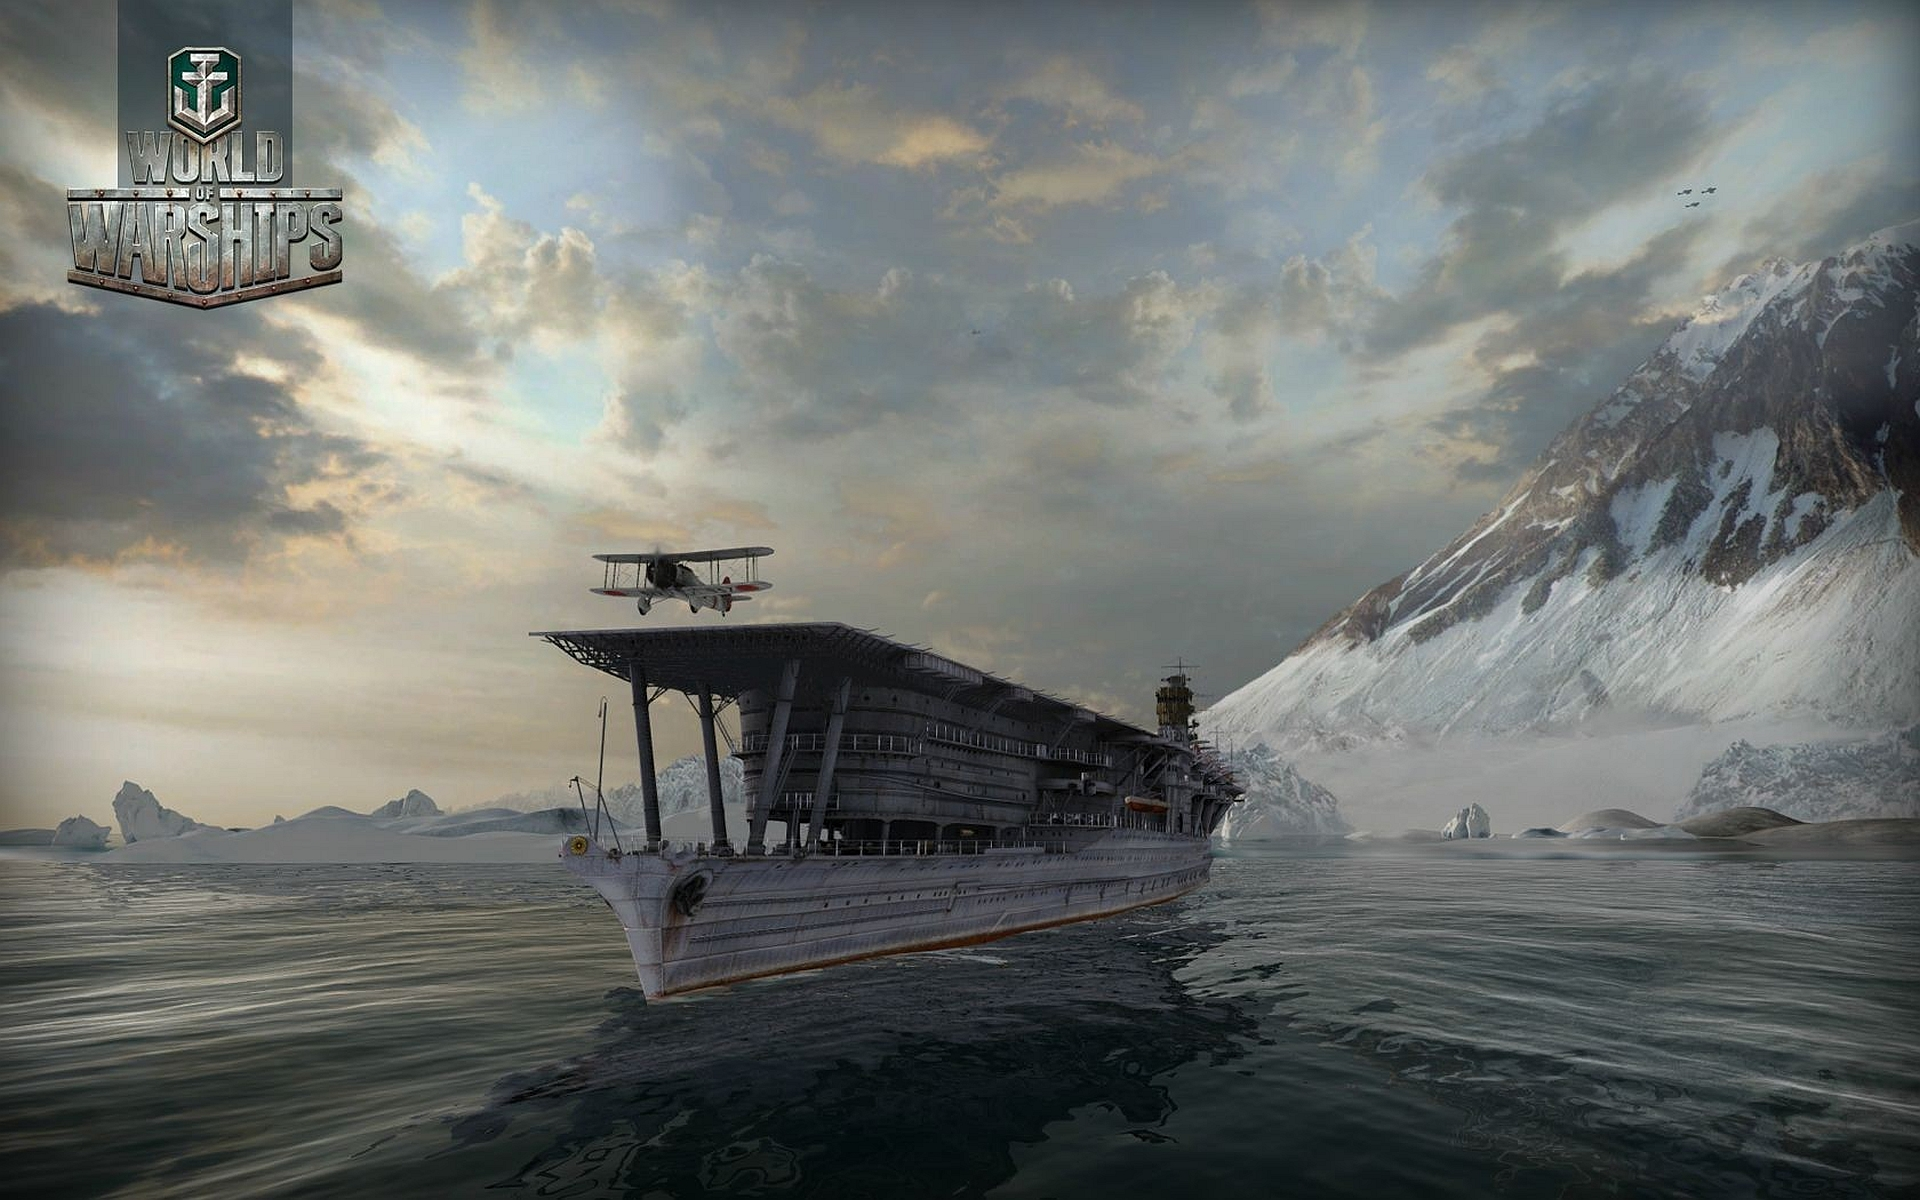 World Of Warships Wallpaper: World Of Warships Wallpapers, Pictures, Images